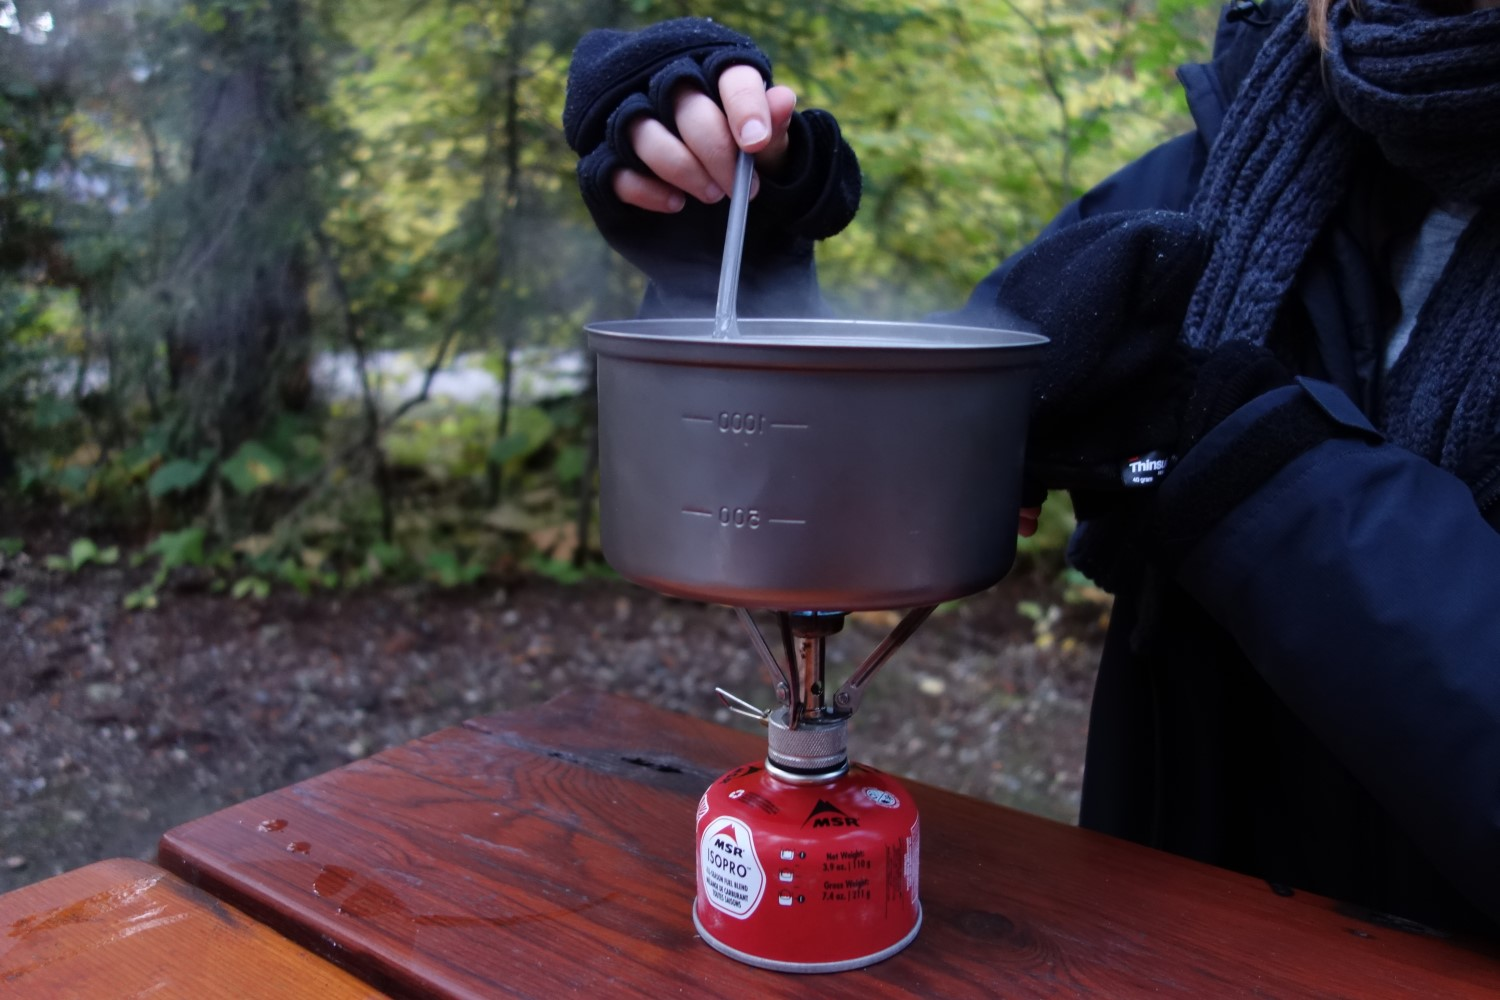 cooking-backpacking-meal.jpg